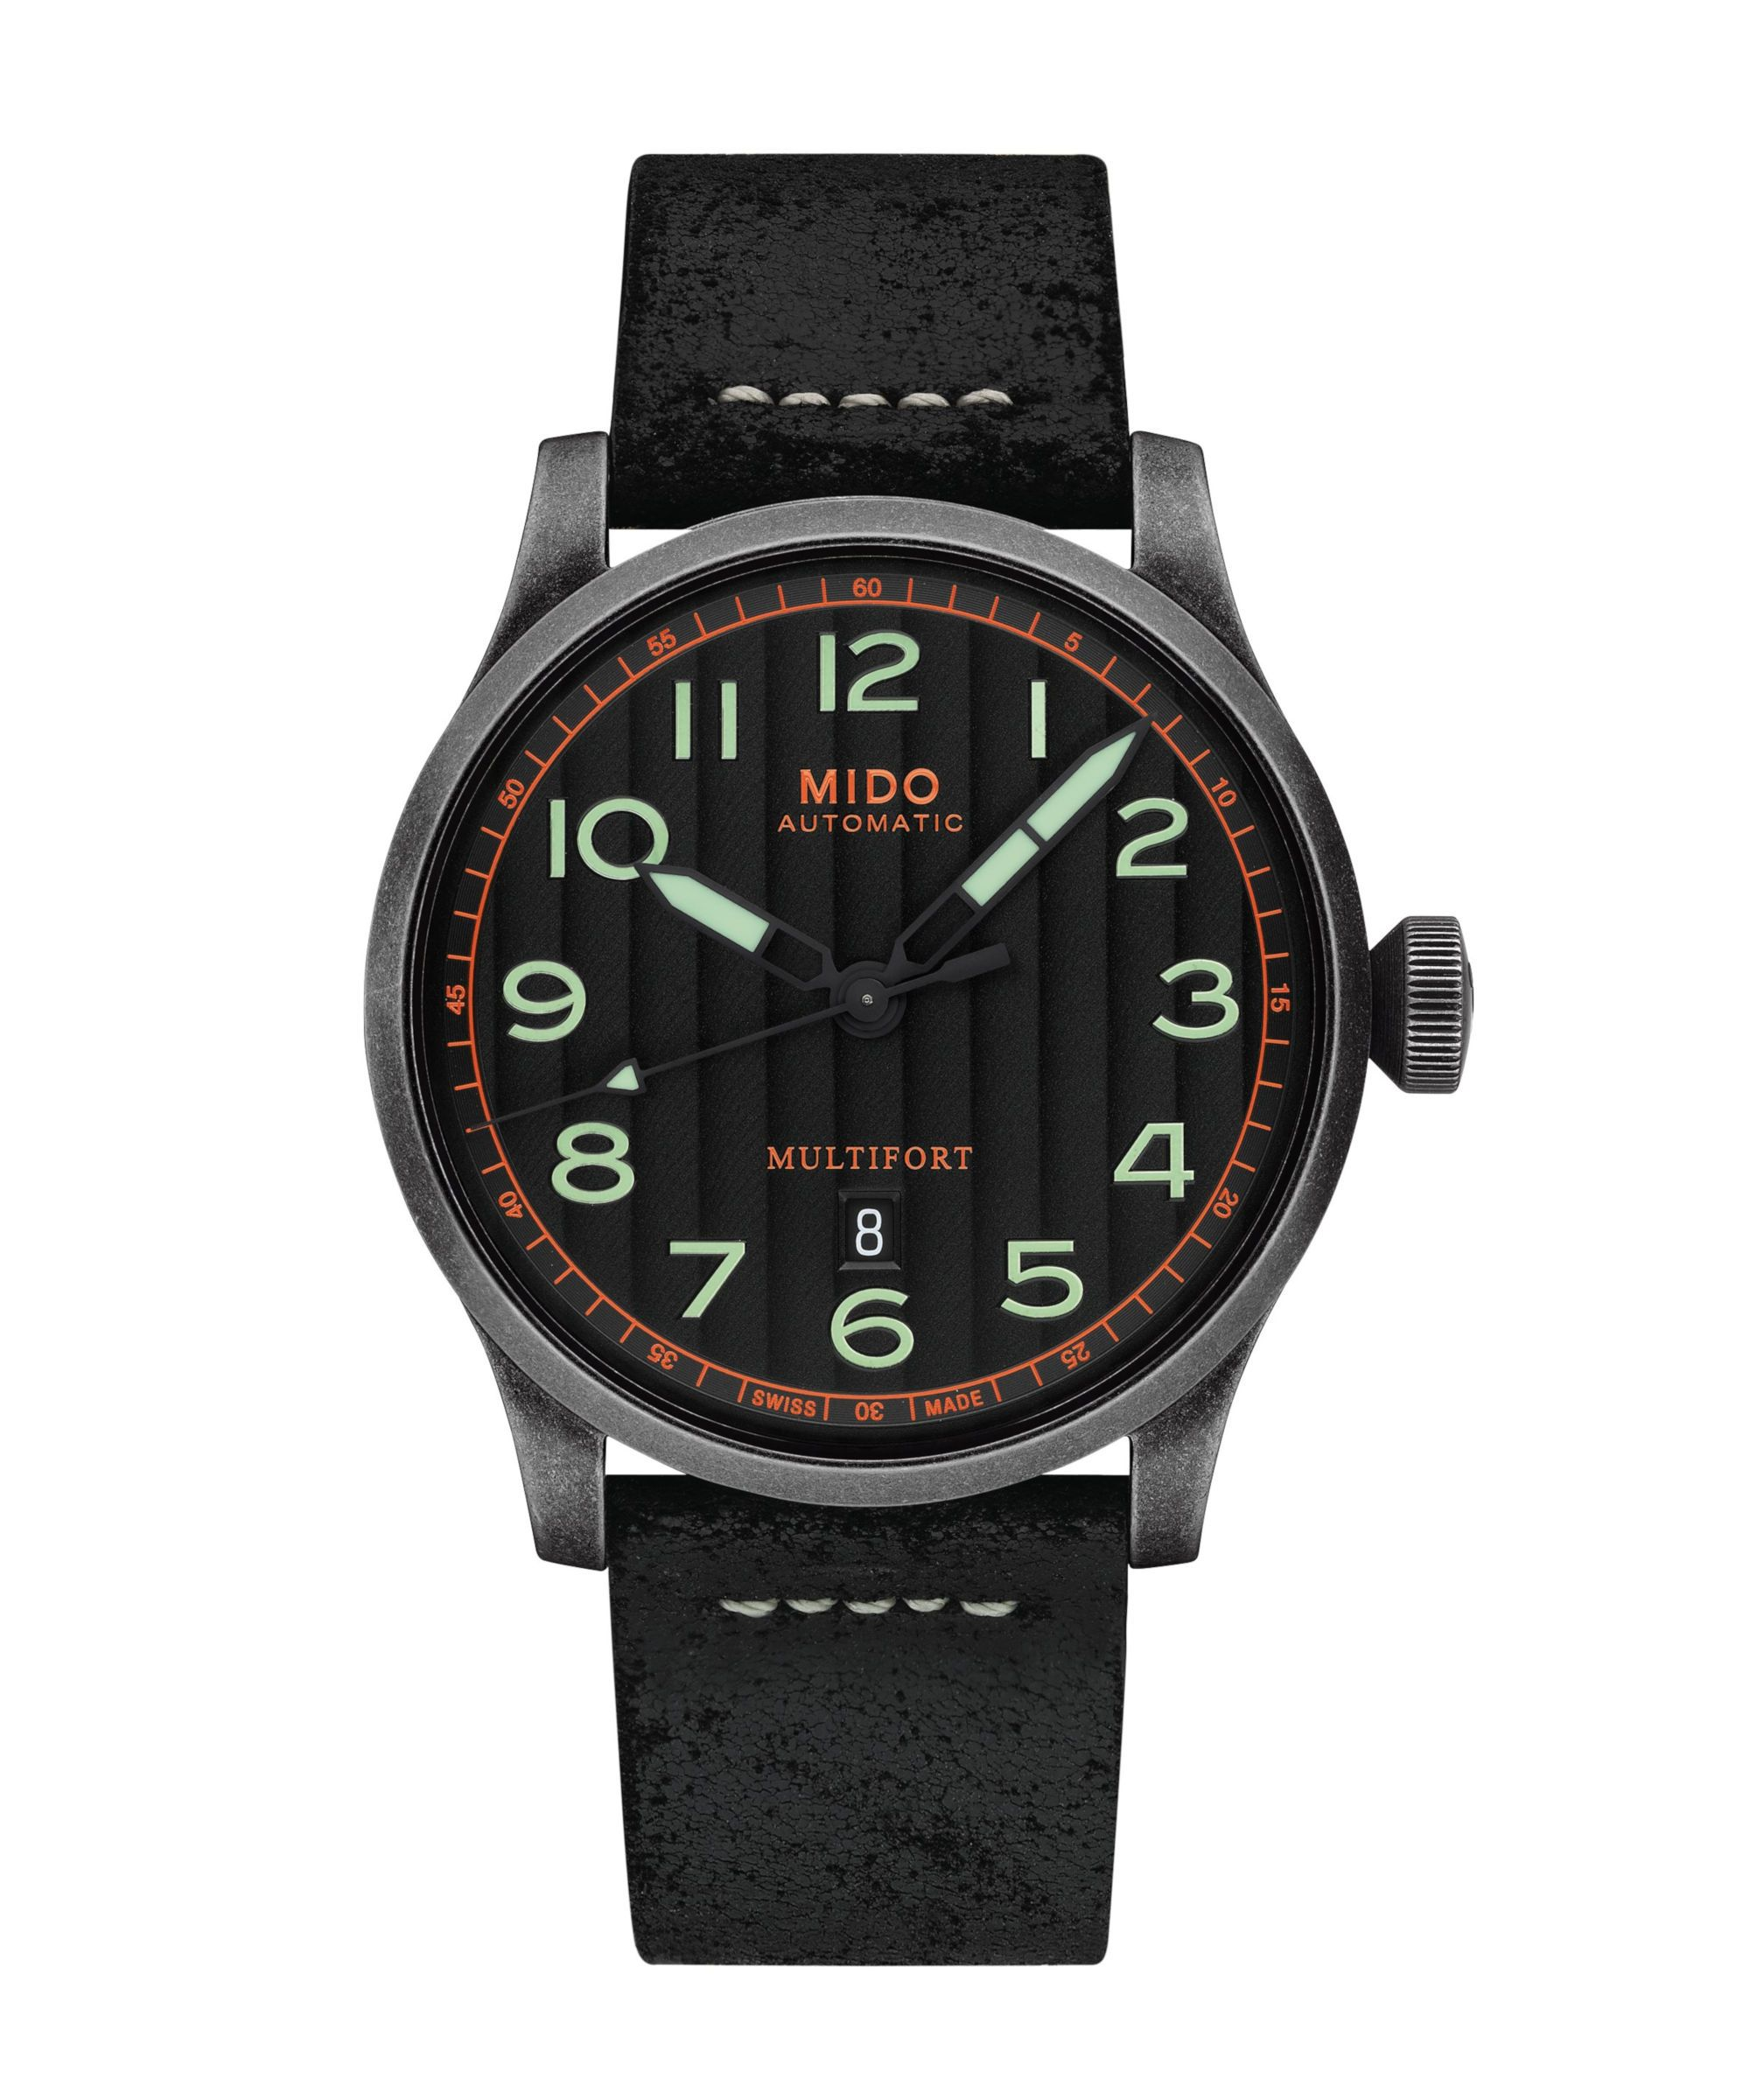 Mido Multifort Gent - 14822